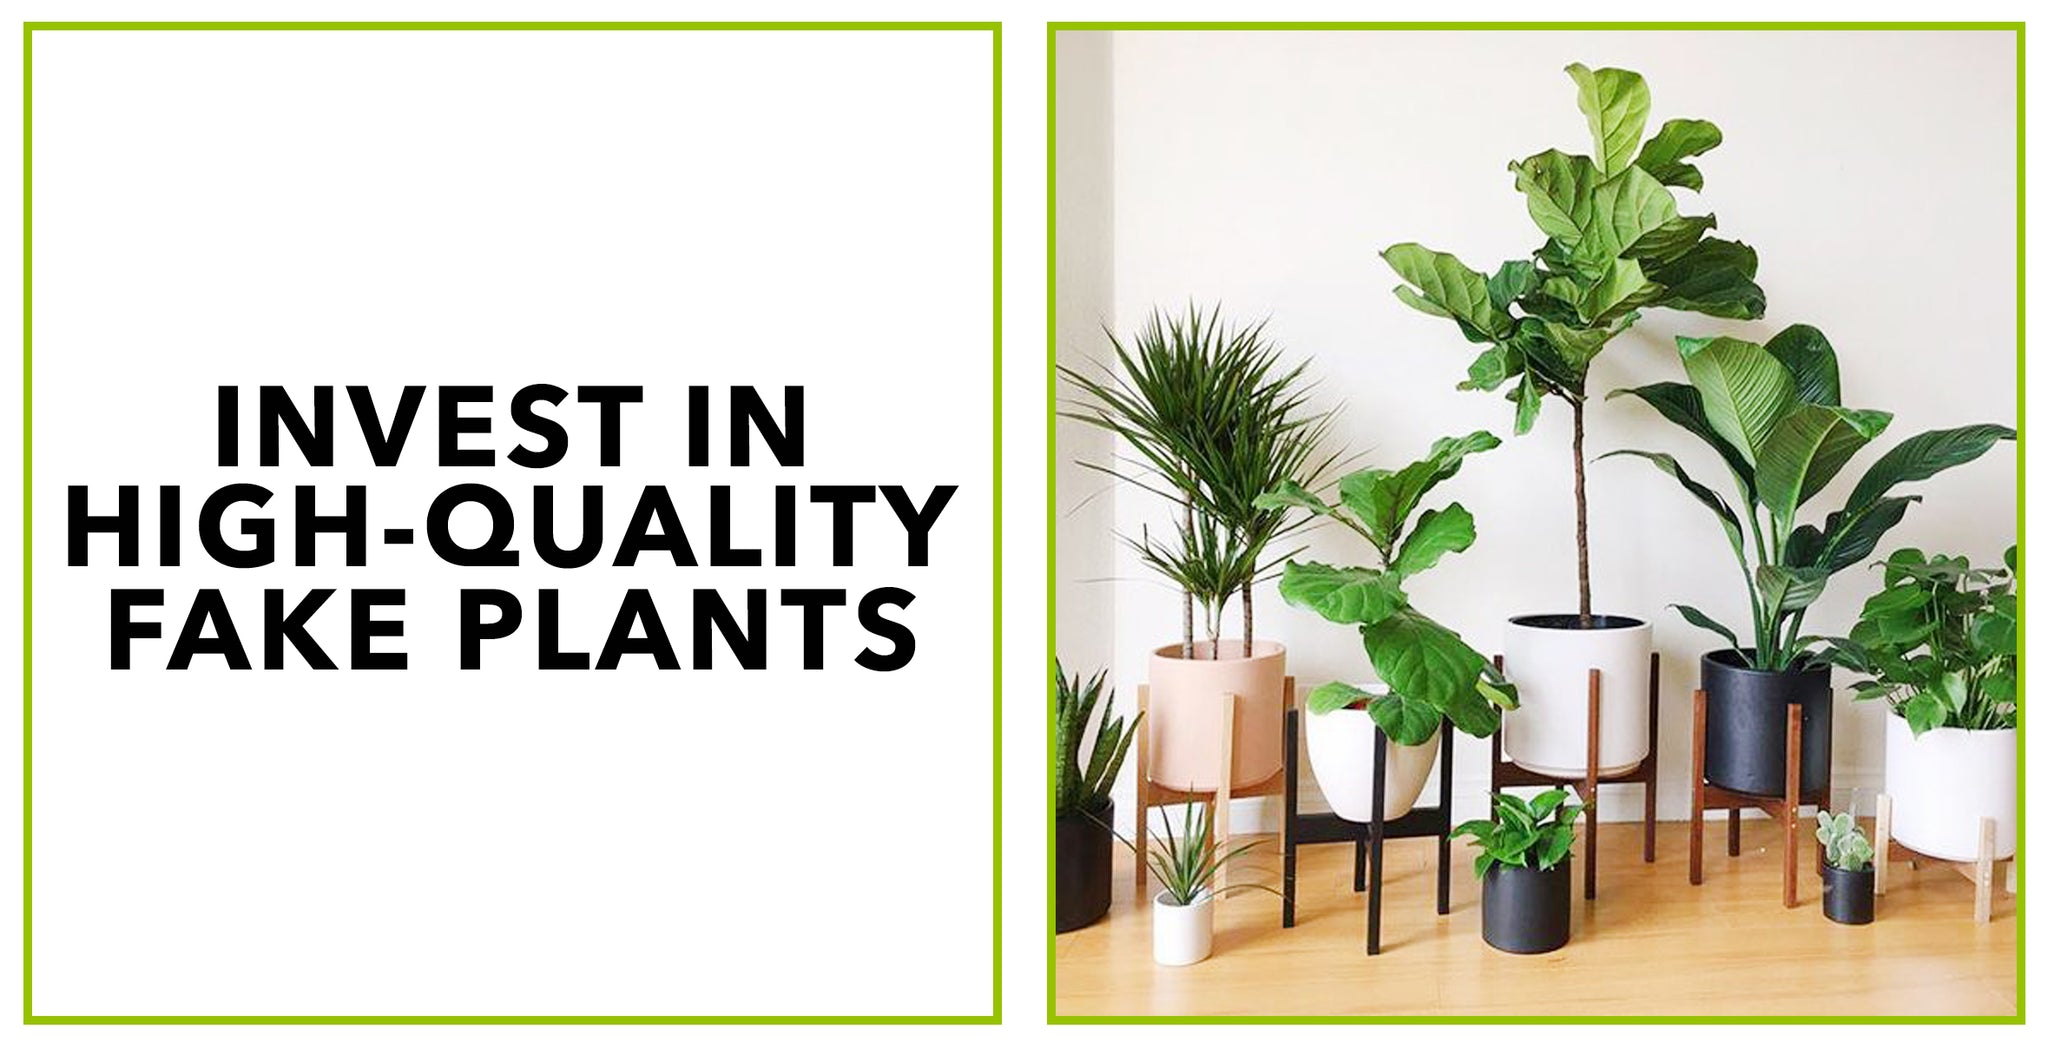 Invest in High-Quality Fake Plants